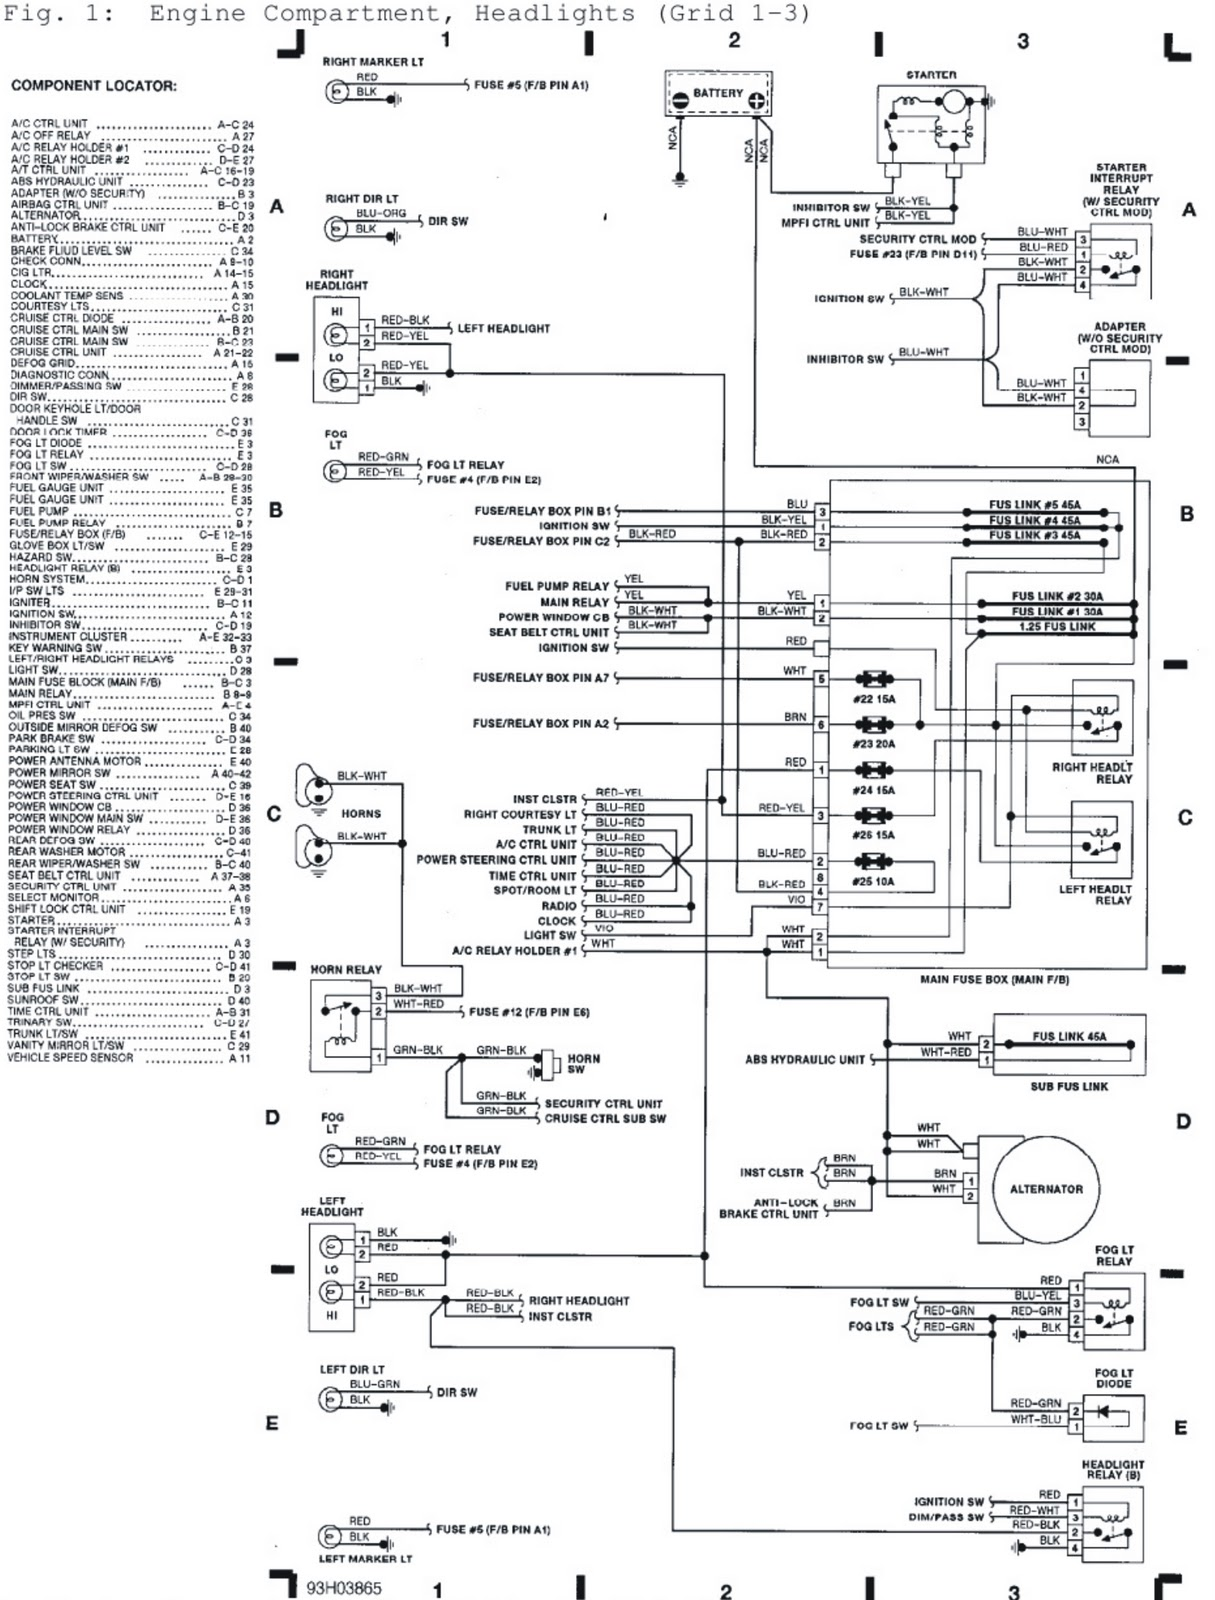 ypxr_5742] 1992 subaru svx wiring diagram full wiring diagram -  acldiagram.phpbb3.es  diagram database website full edition - phpbb3.es